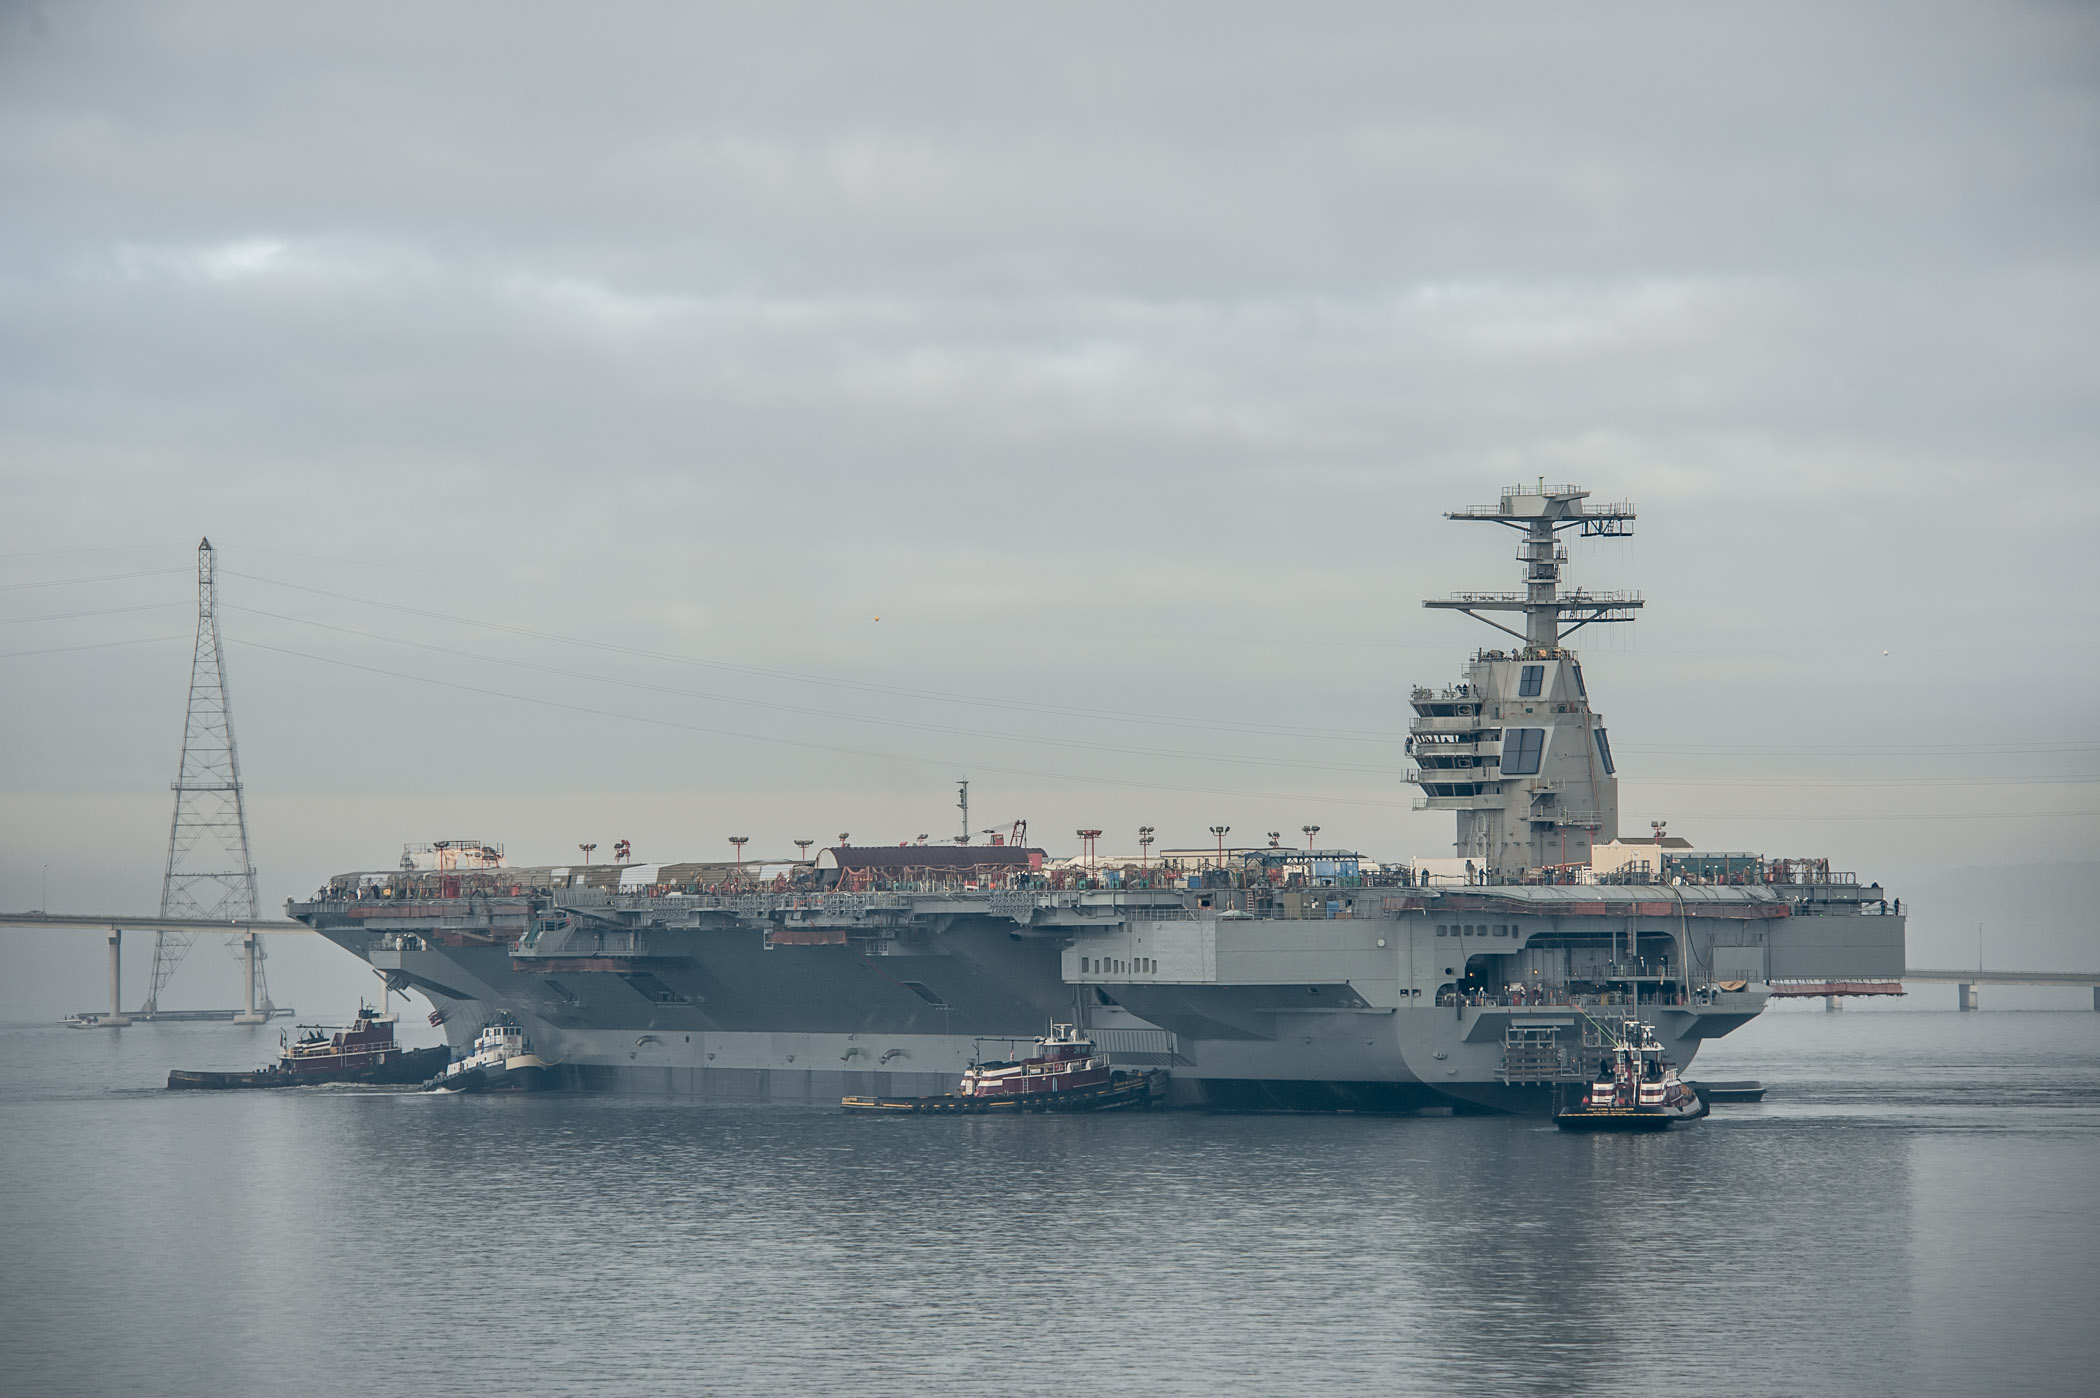 USS GERALD R. FORD CVN-78 am 17.11.2013Bild: Huntington Ingalls Industries